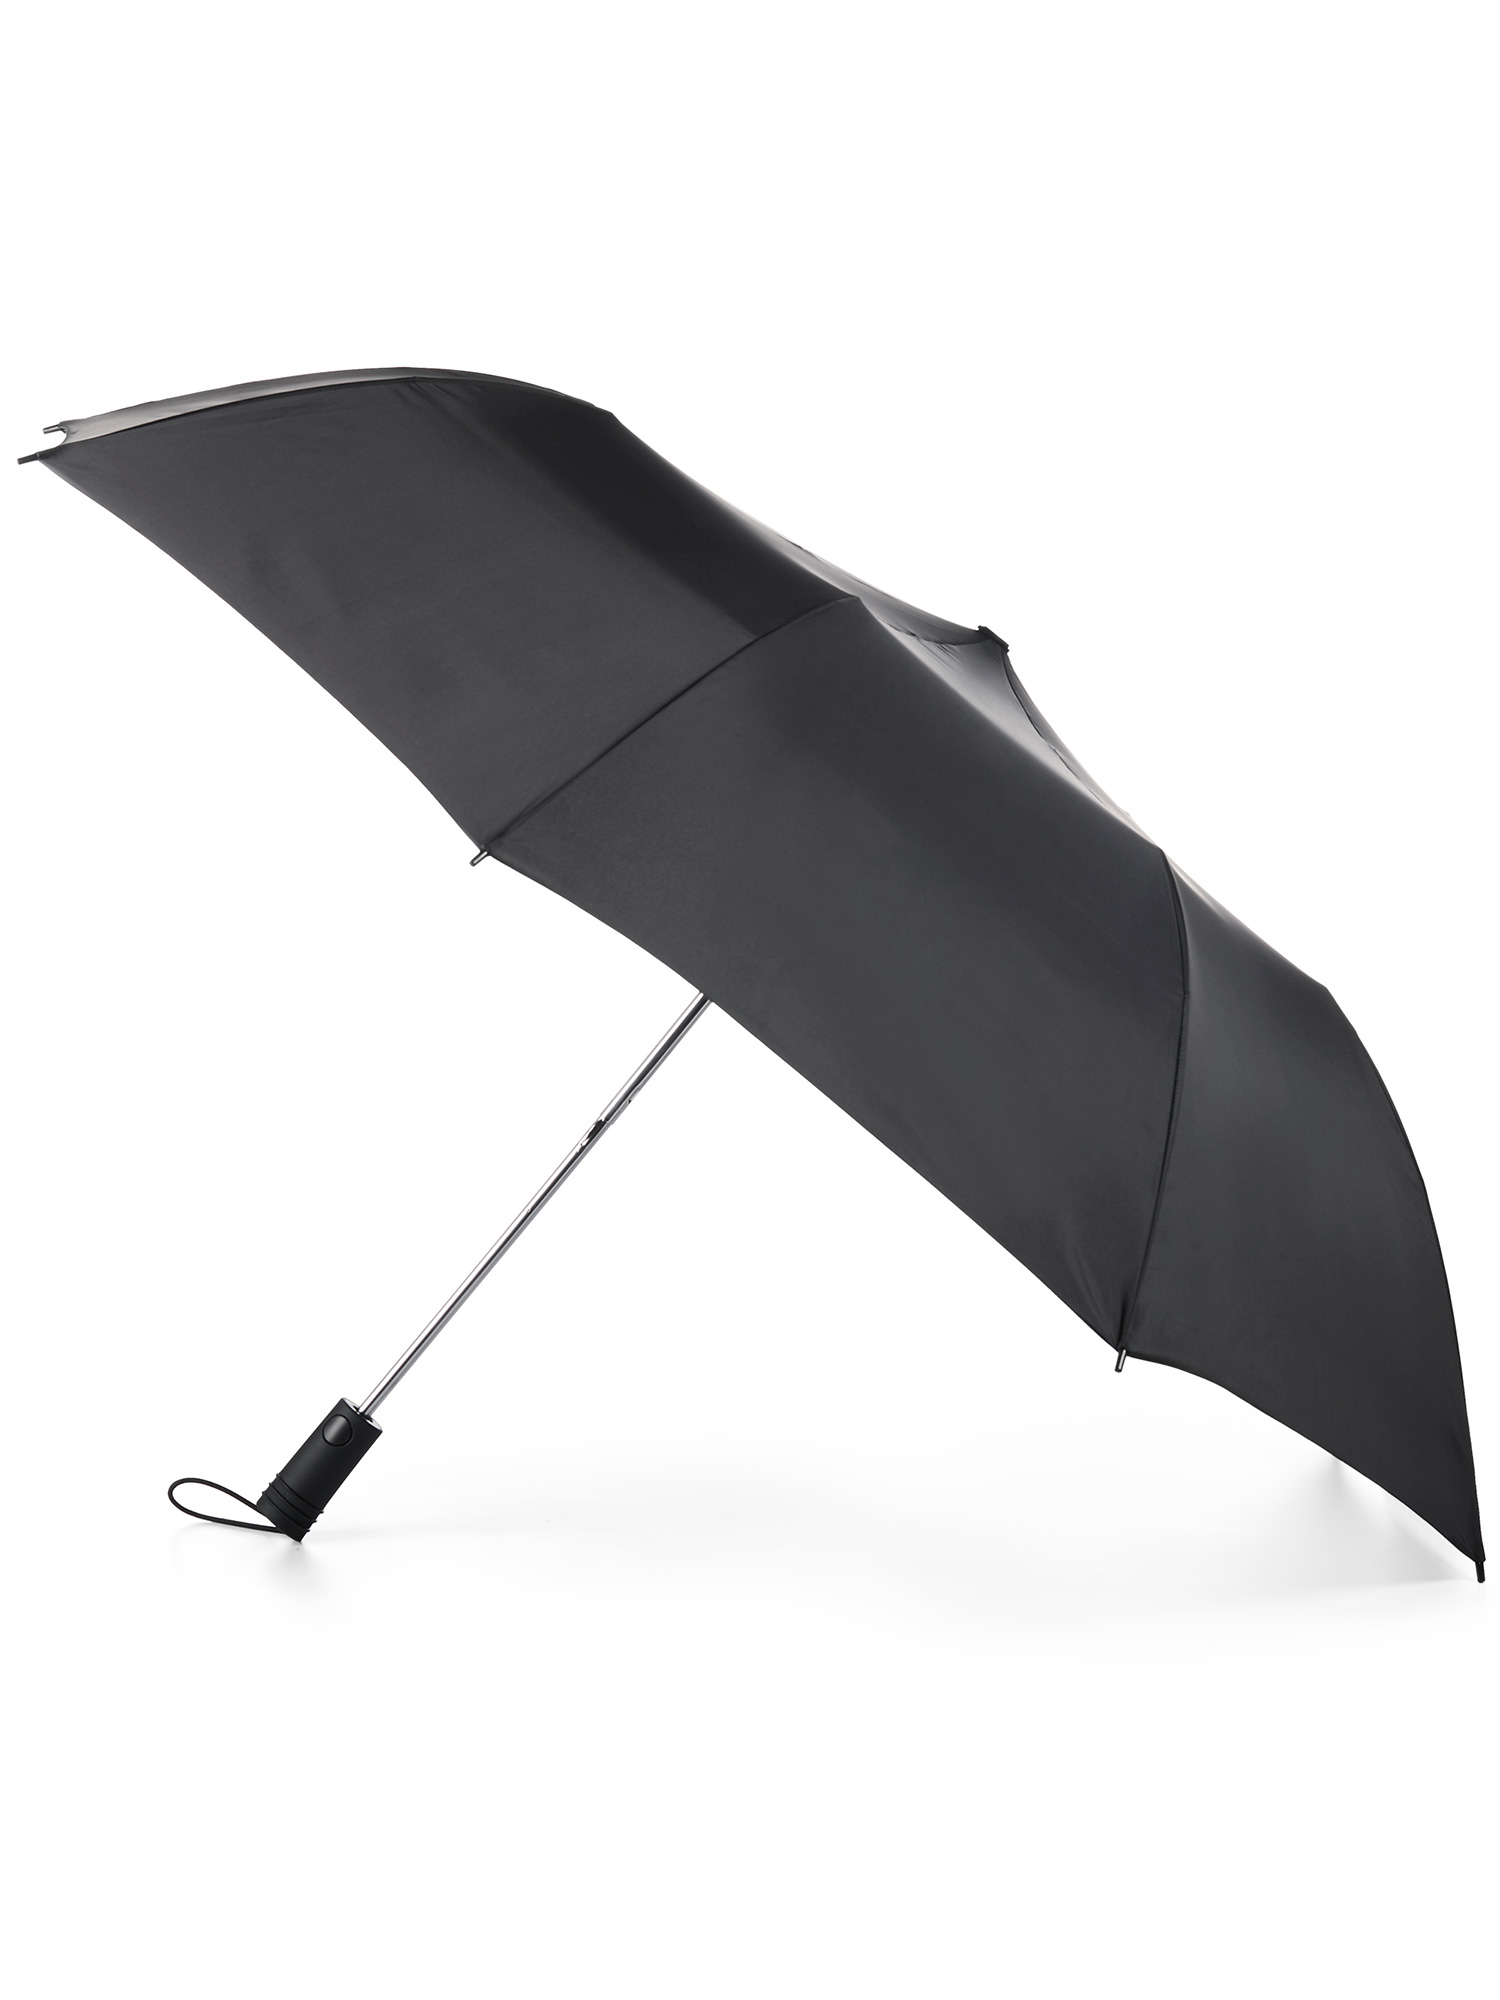 Totes Two-Section NeverWet SunGuard Auto-Open Umbrella, 55""